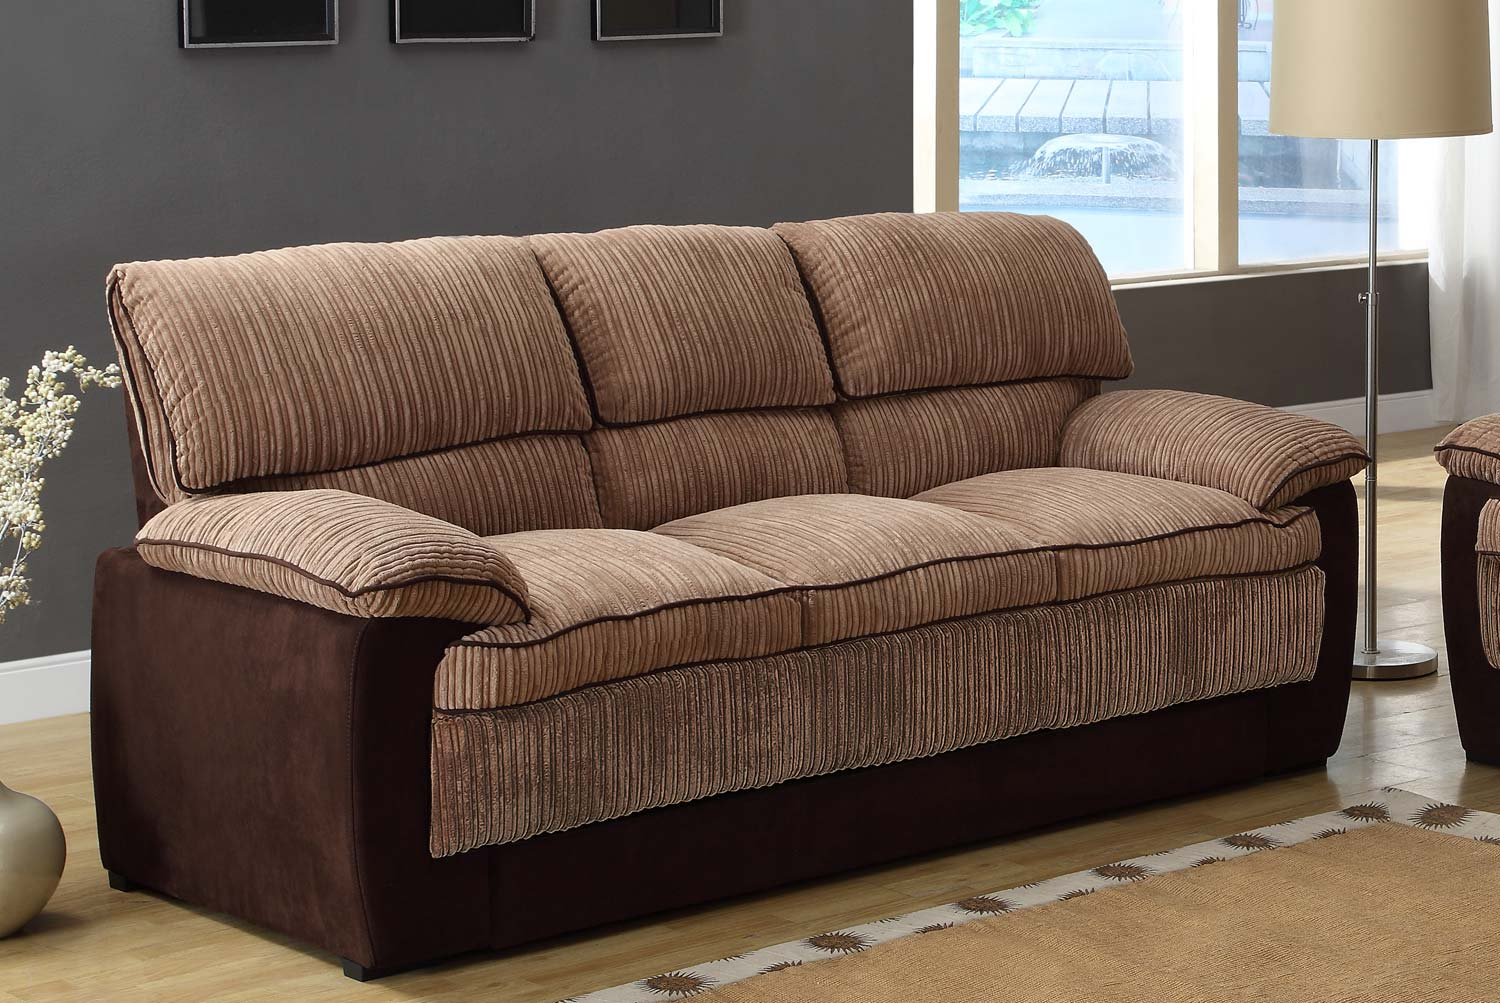 Homelegance mccollum sofa set brown corduroy and for Brown corduroy couch